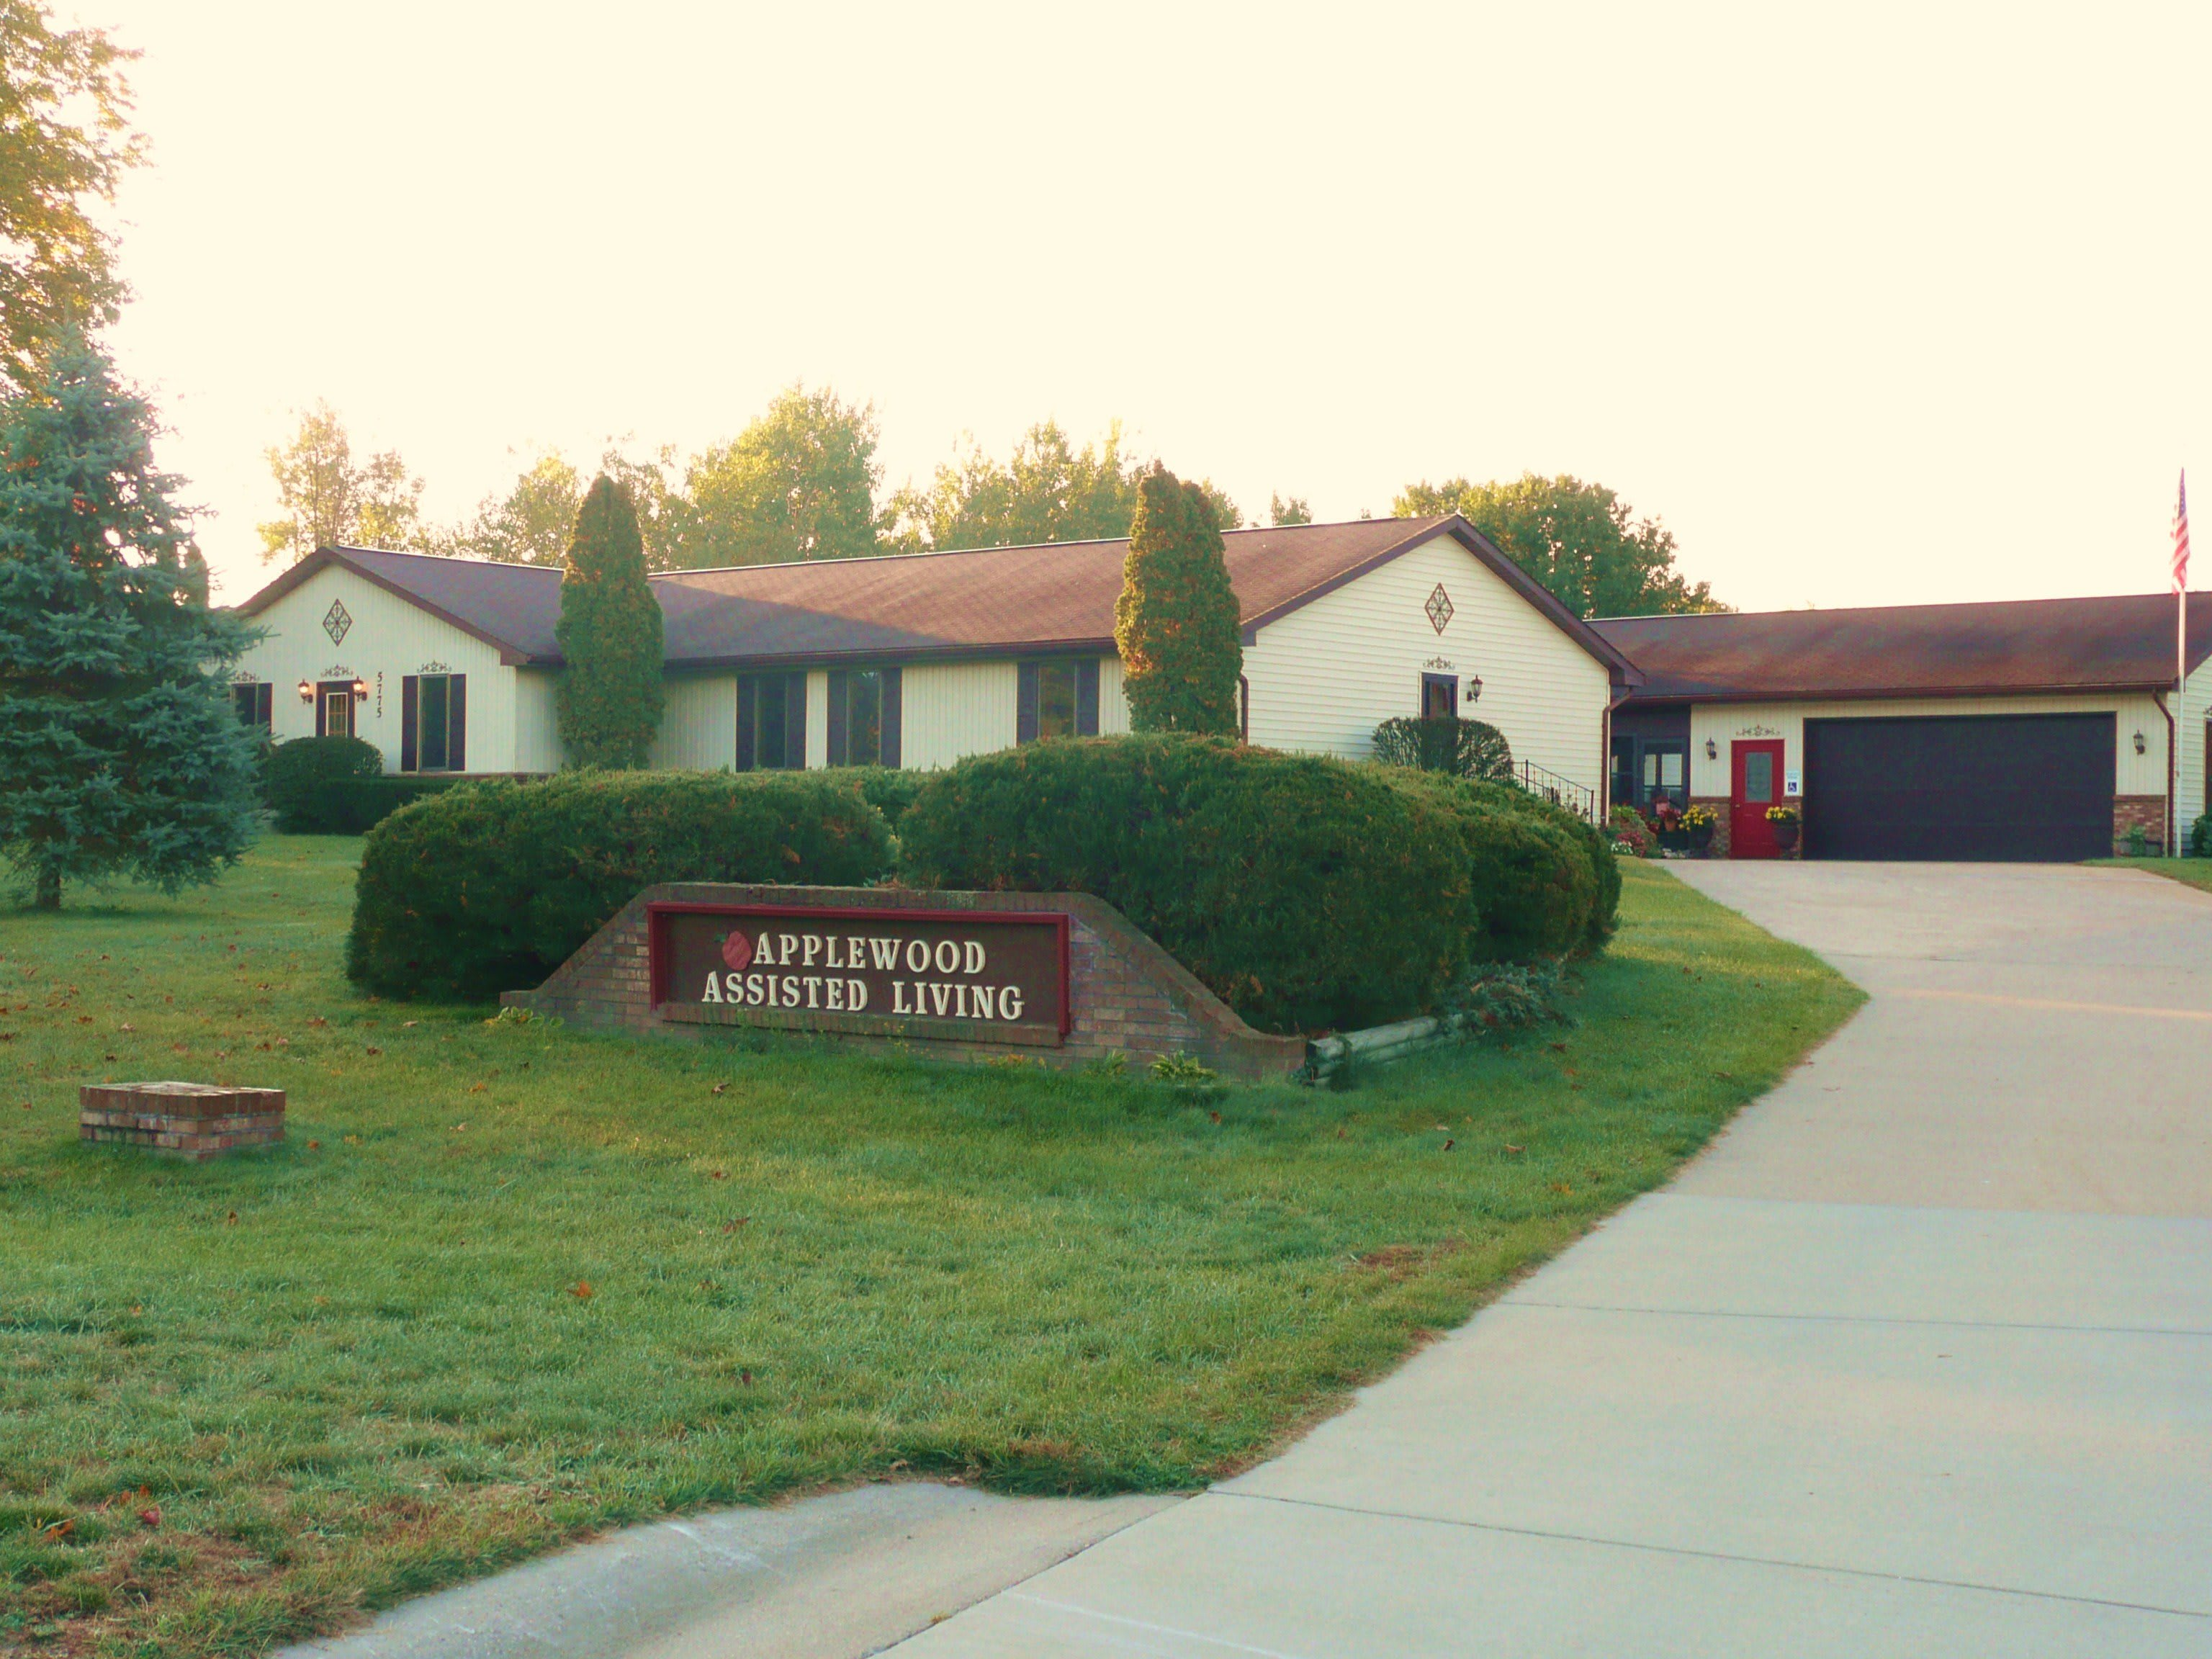 Photo 1 of Applewood Assisted Living